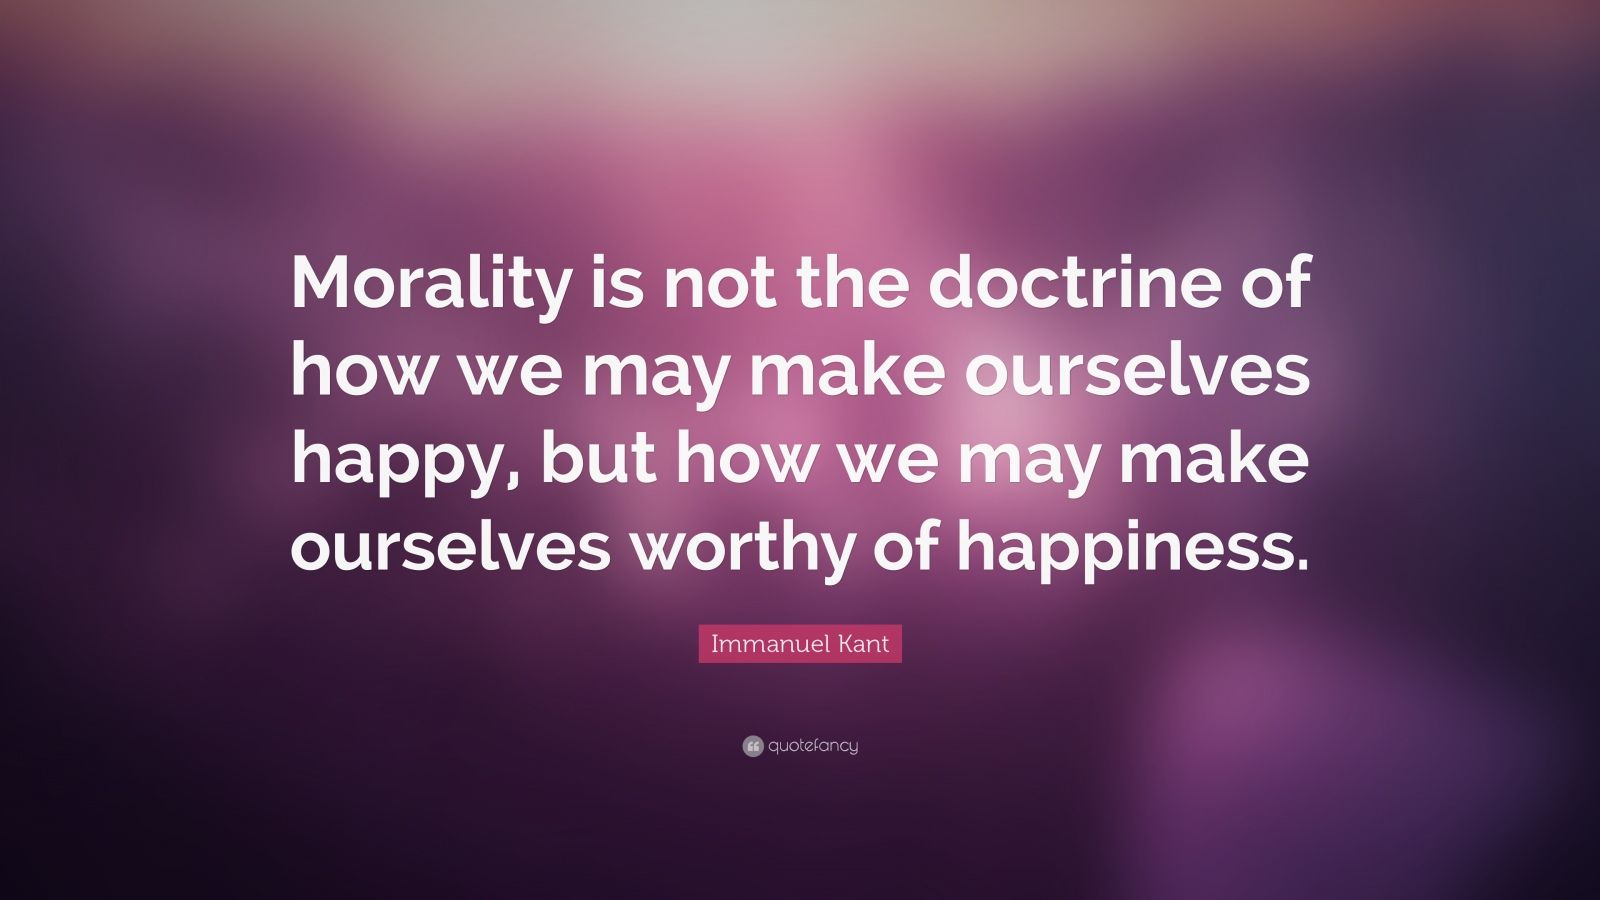 Kant's view of utility and happieness?